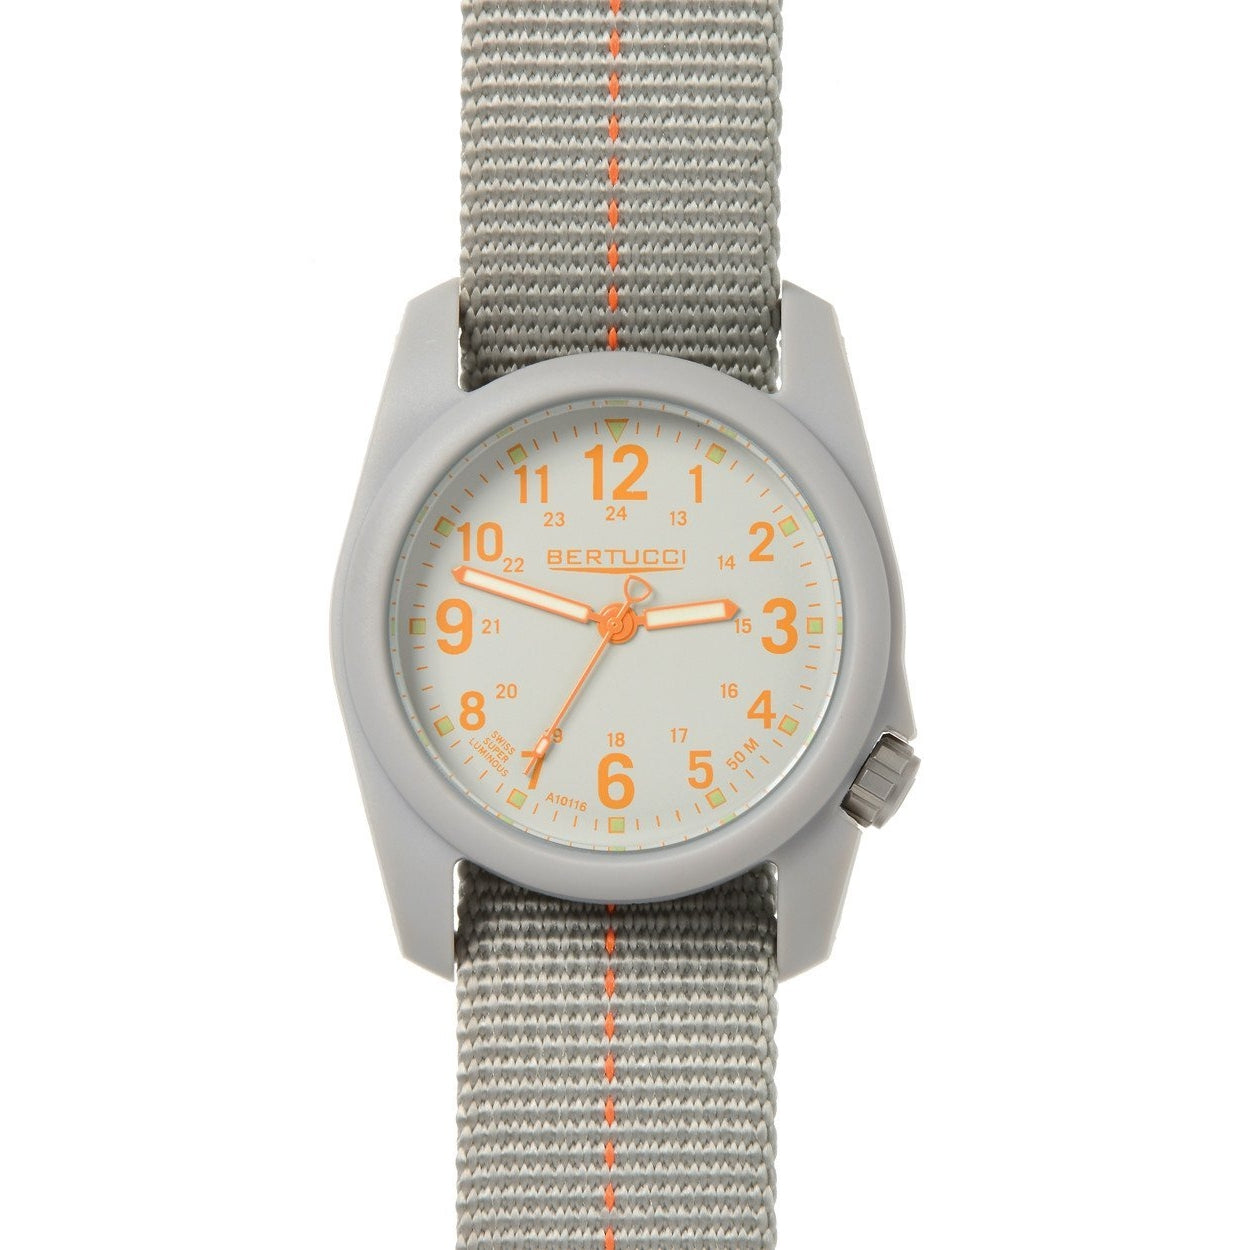 Bertucci DX3 Plus Field Resin Watch (Dash-Striped Granite Gray/Orange Nylon Strap) 11045